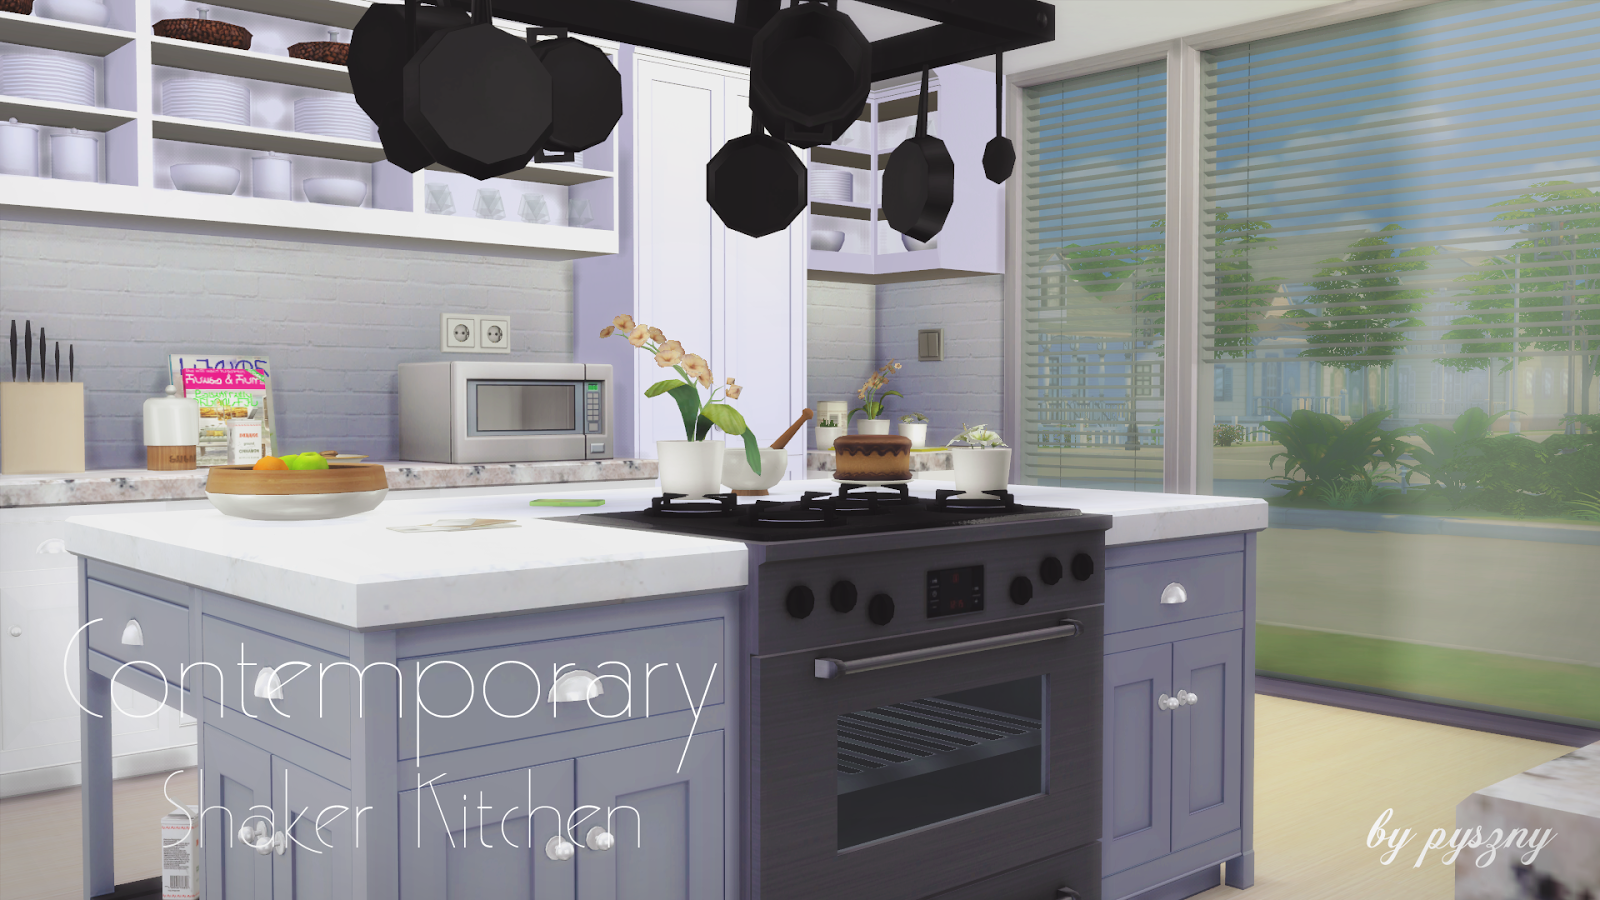 My sims 4 blog contemporary shaker kitchen set by pyszny for Kitchen set aluminium modern